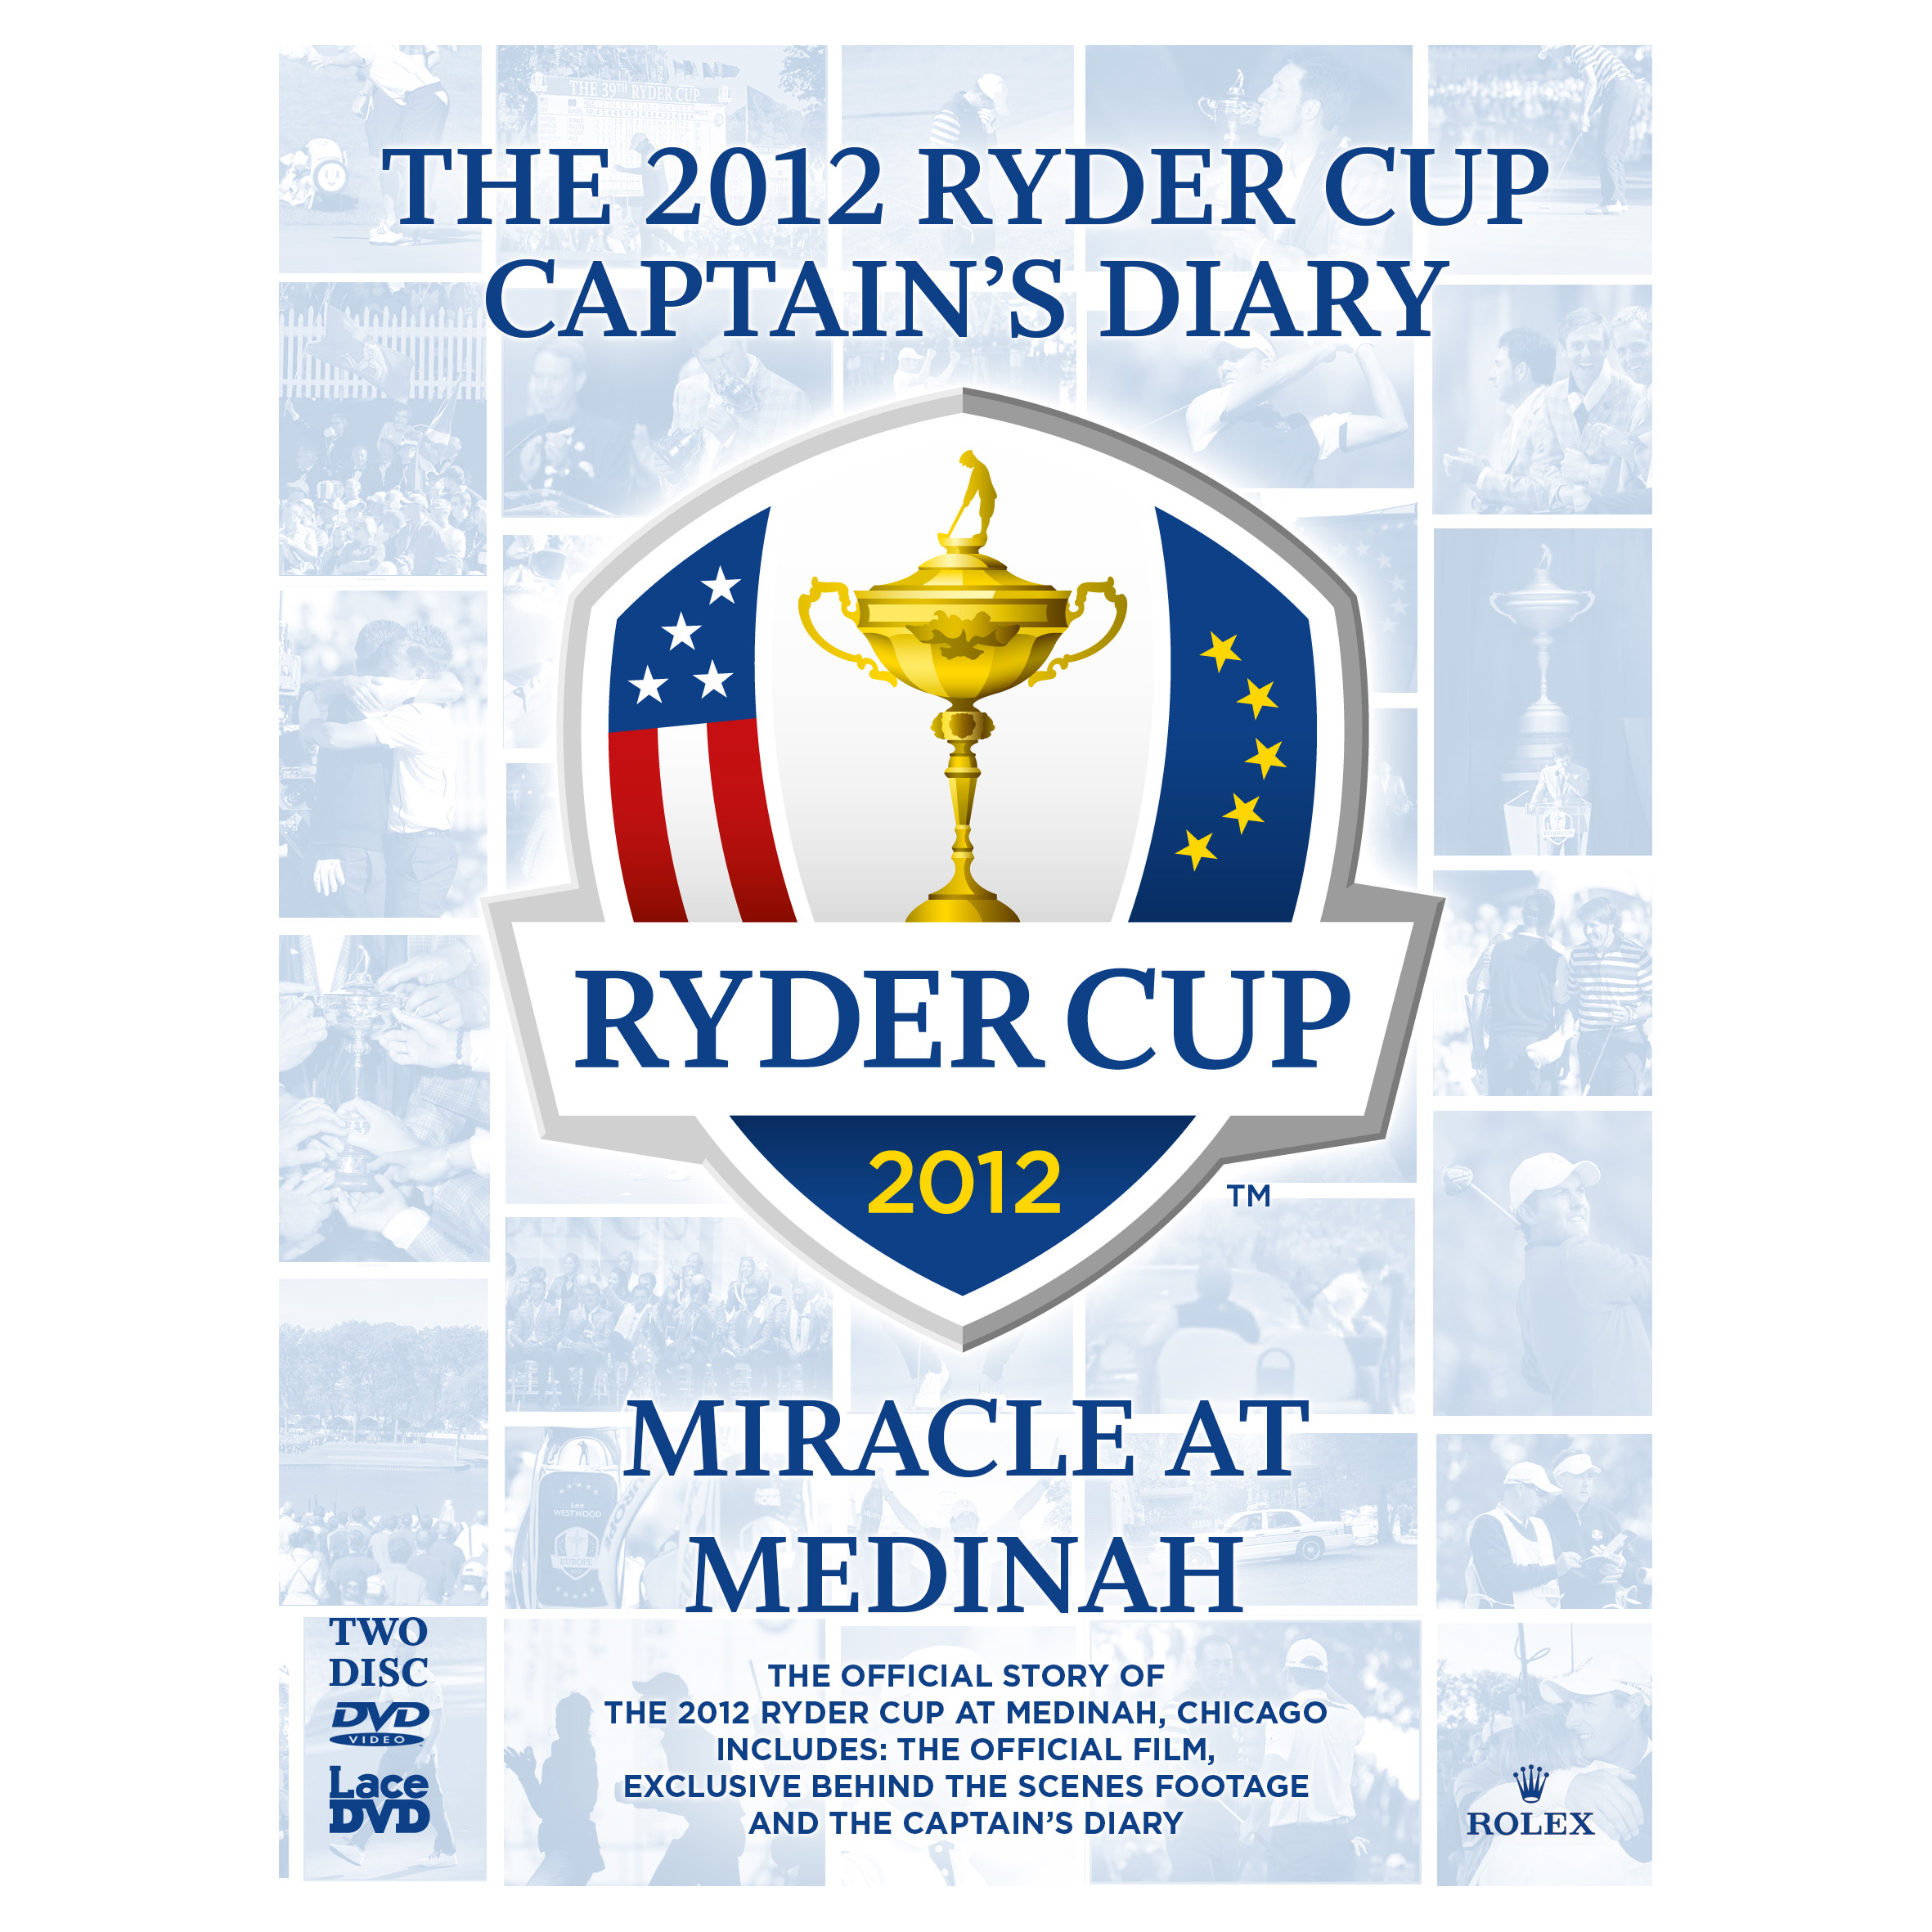 The 2012 Ryder Cup Medinah Diary and Official Film (39th) DVD